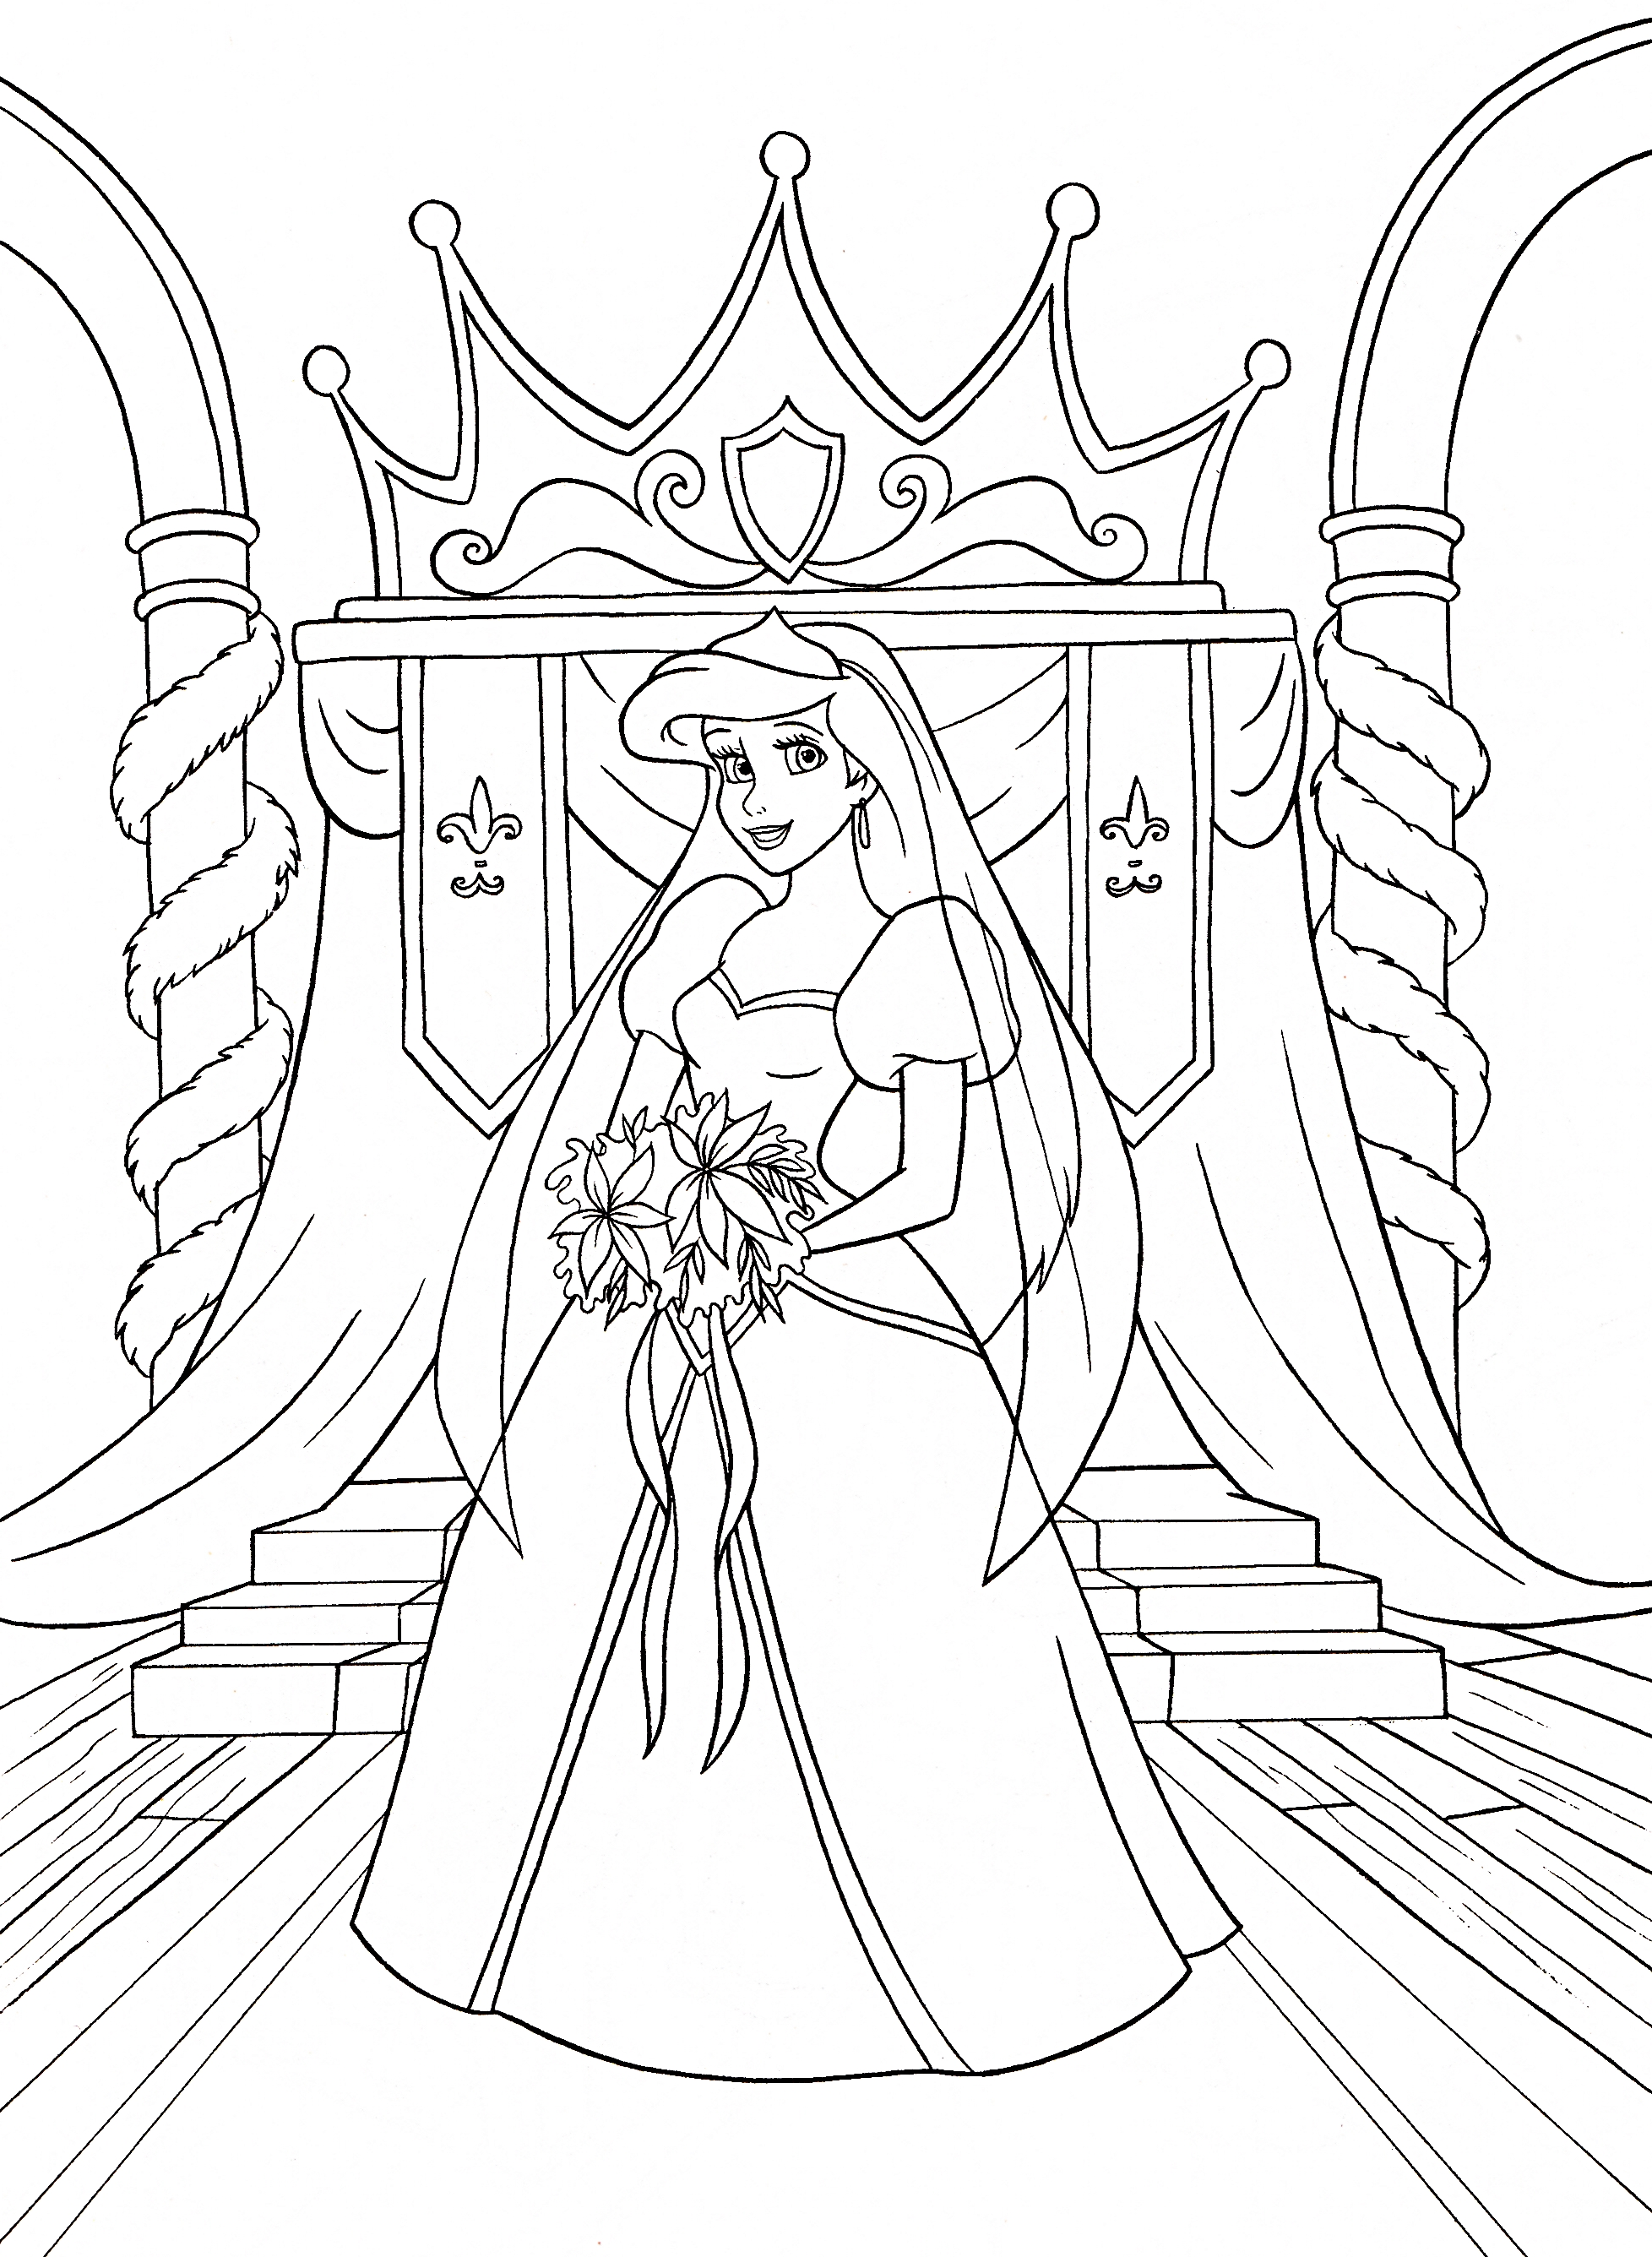 Walt Disney Coloring Pages Princess Ariel Walt Disney Disney Princess Ariel Coloring Pages